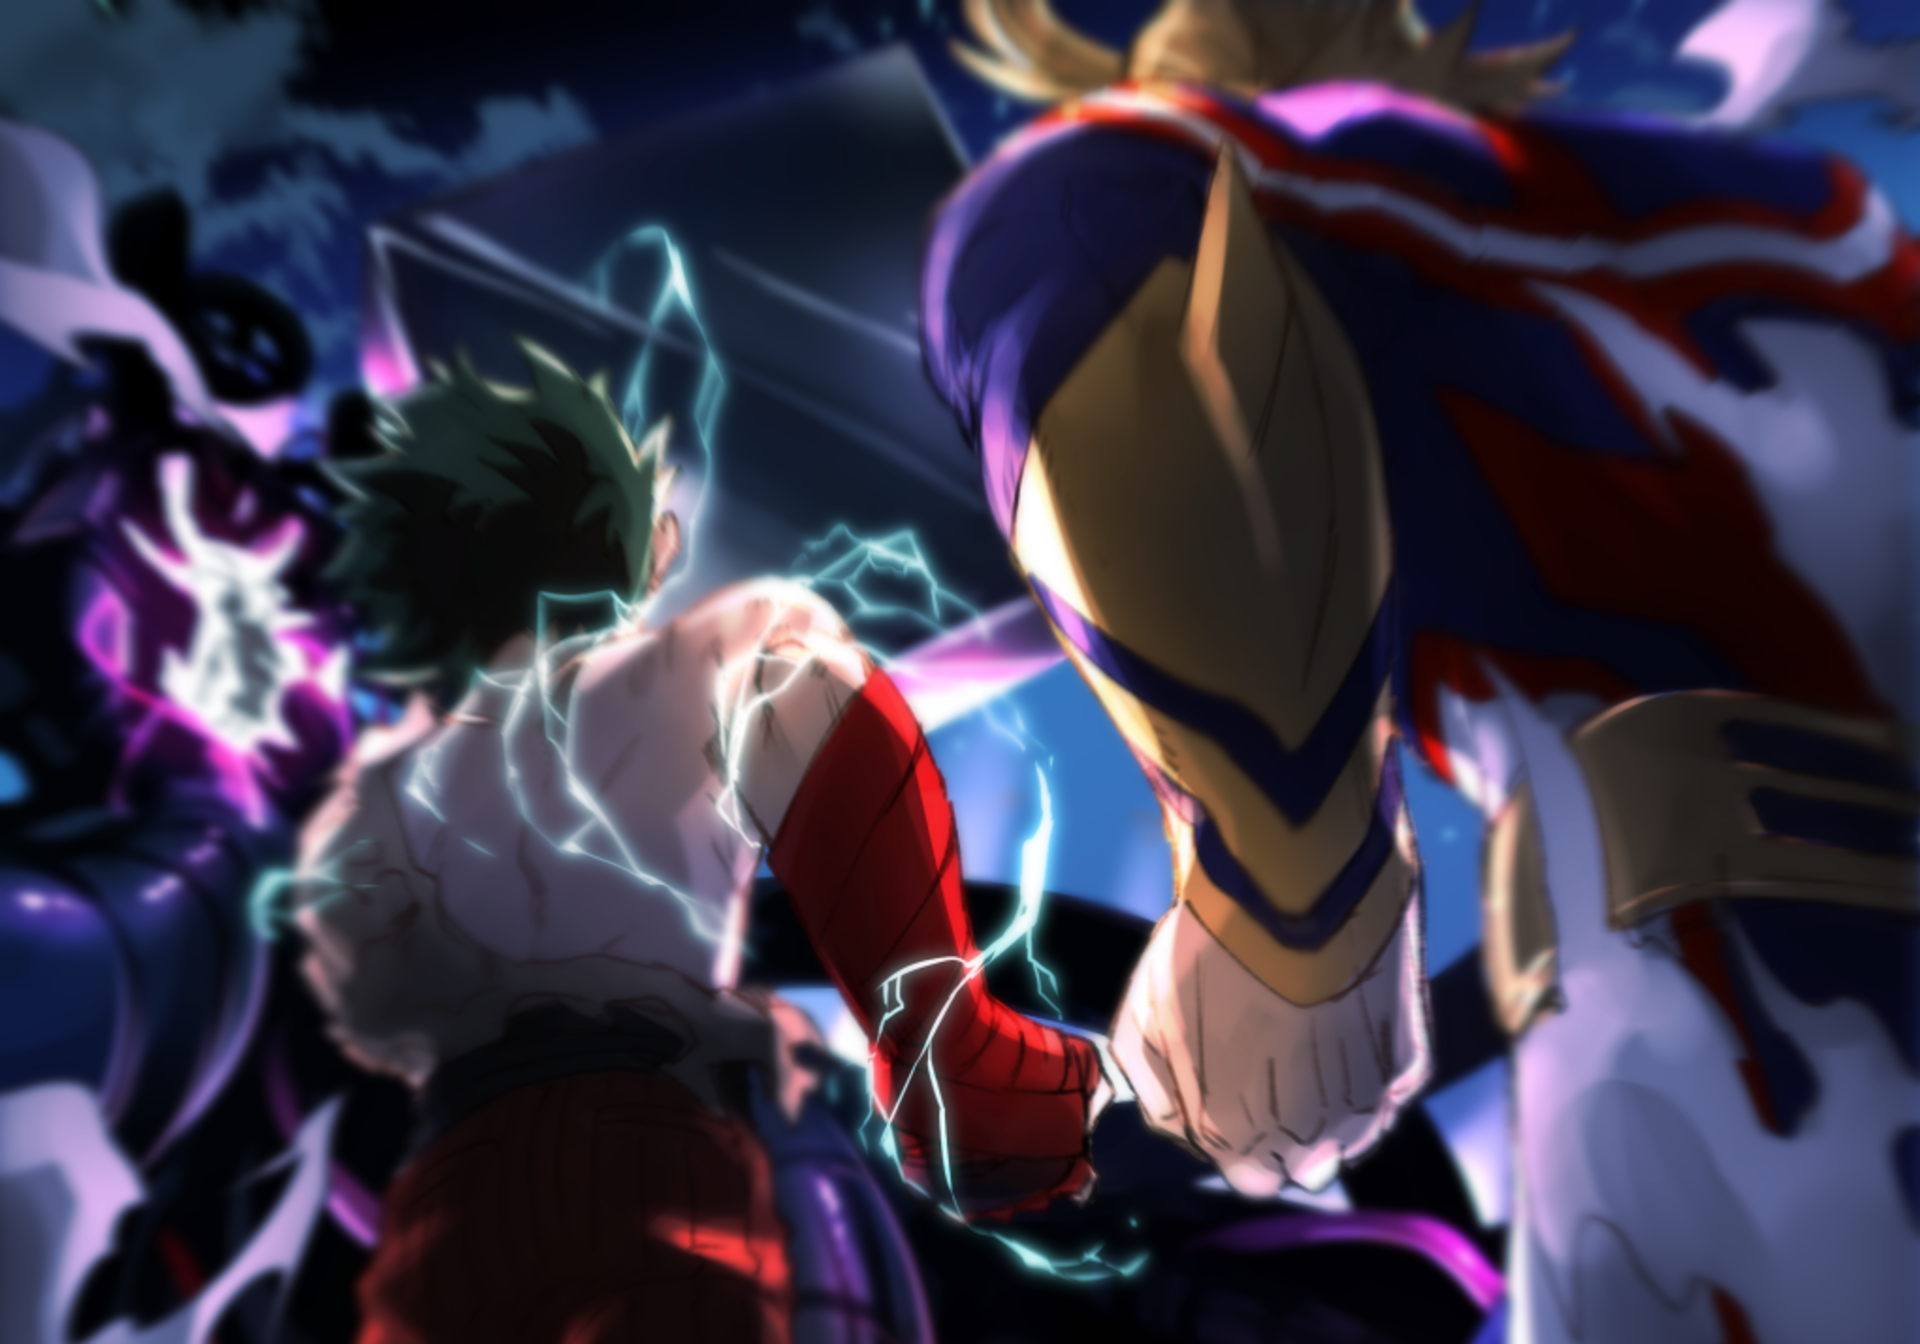 All Might And Deku Vs Vilain Hd Wallpaper Background Image